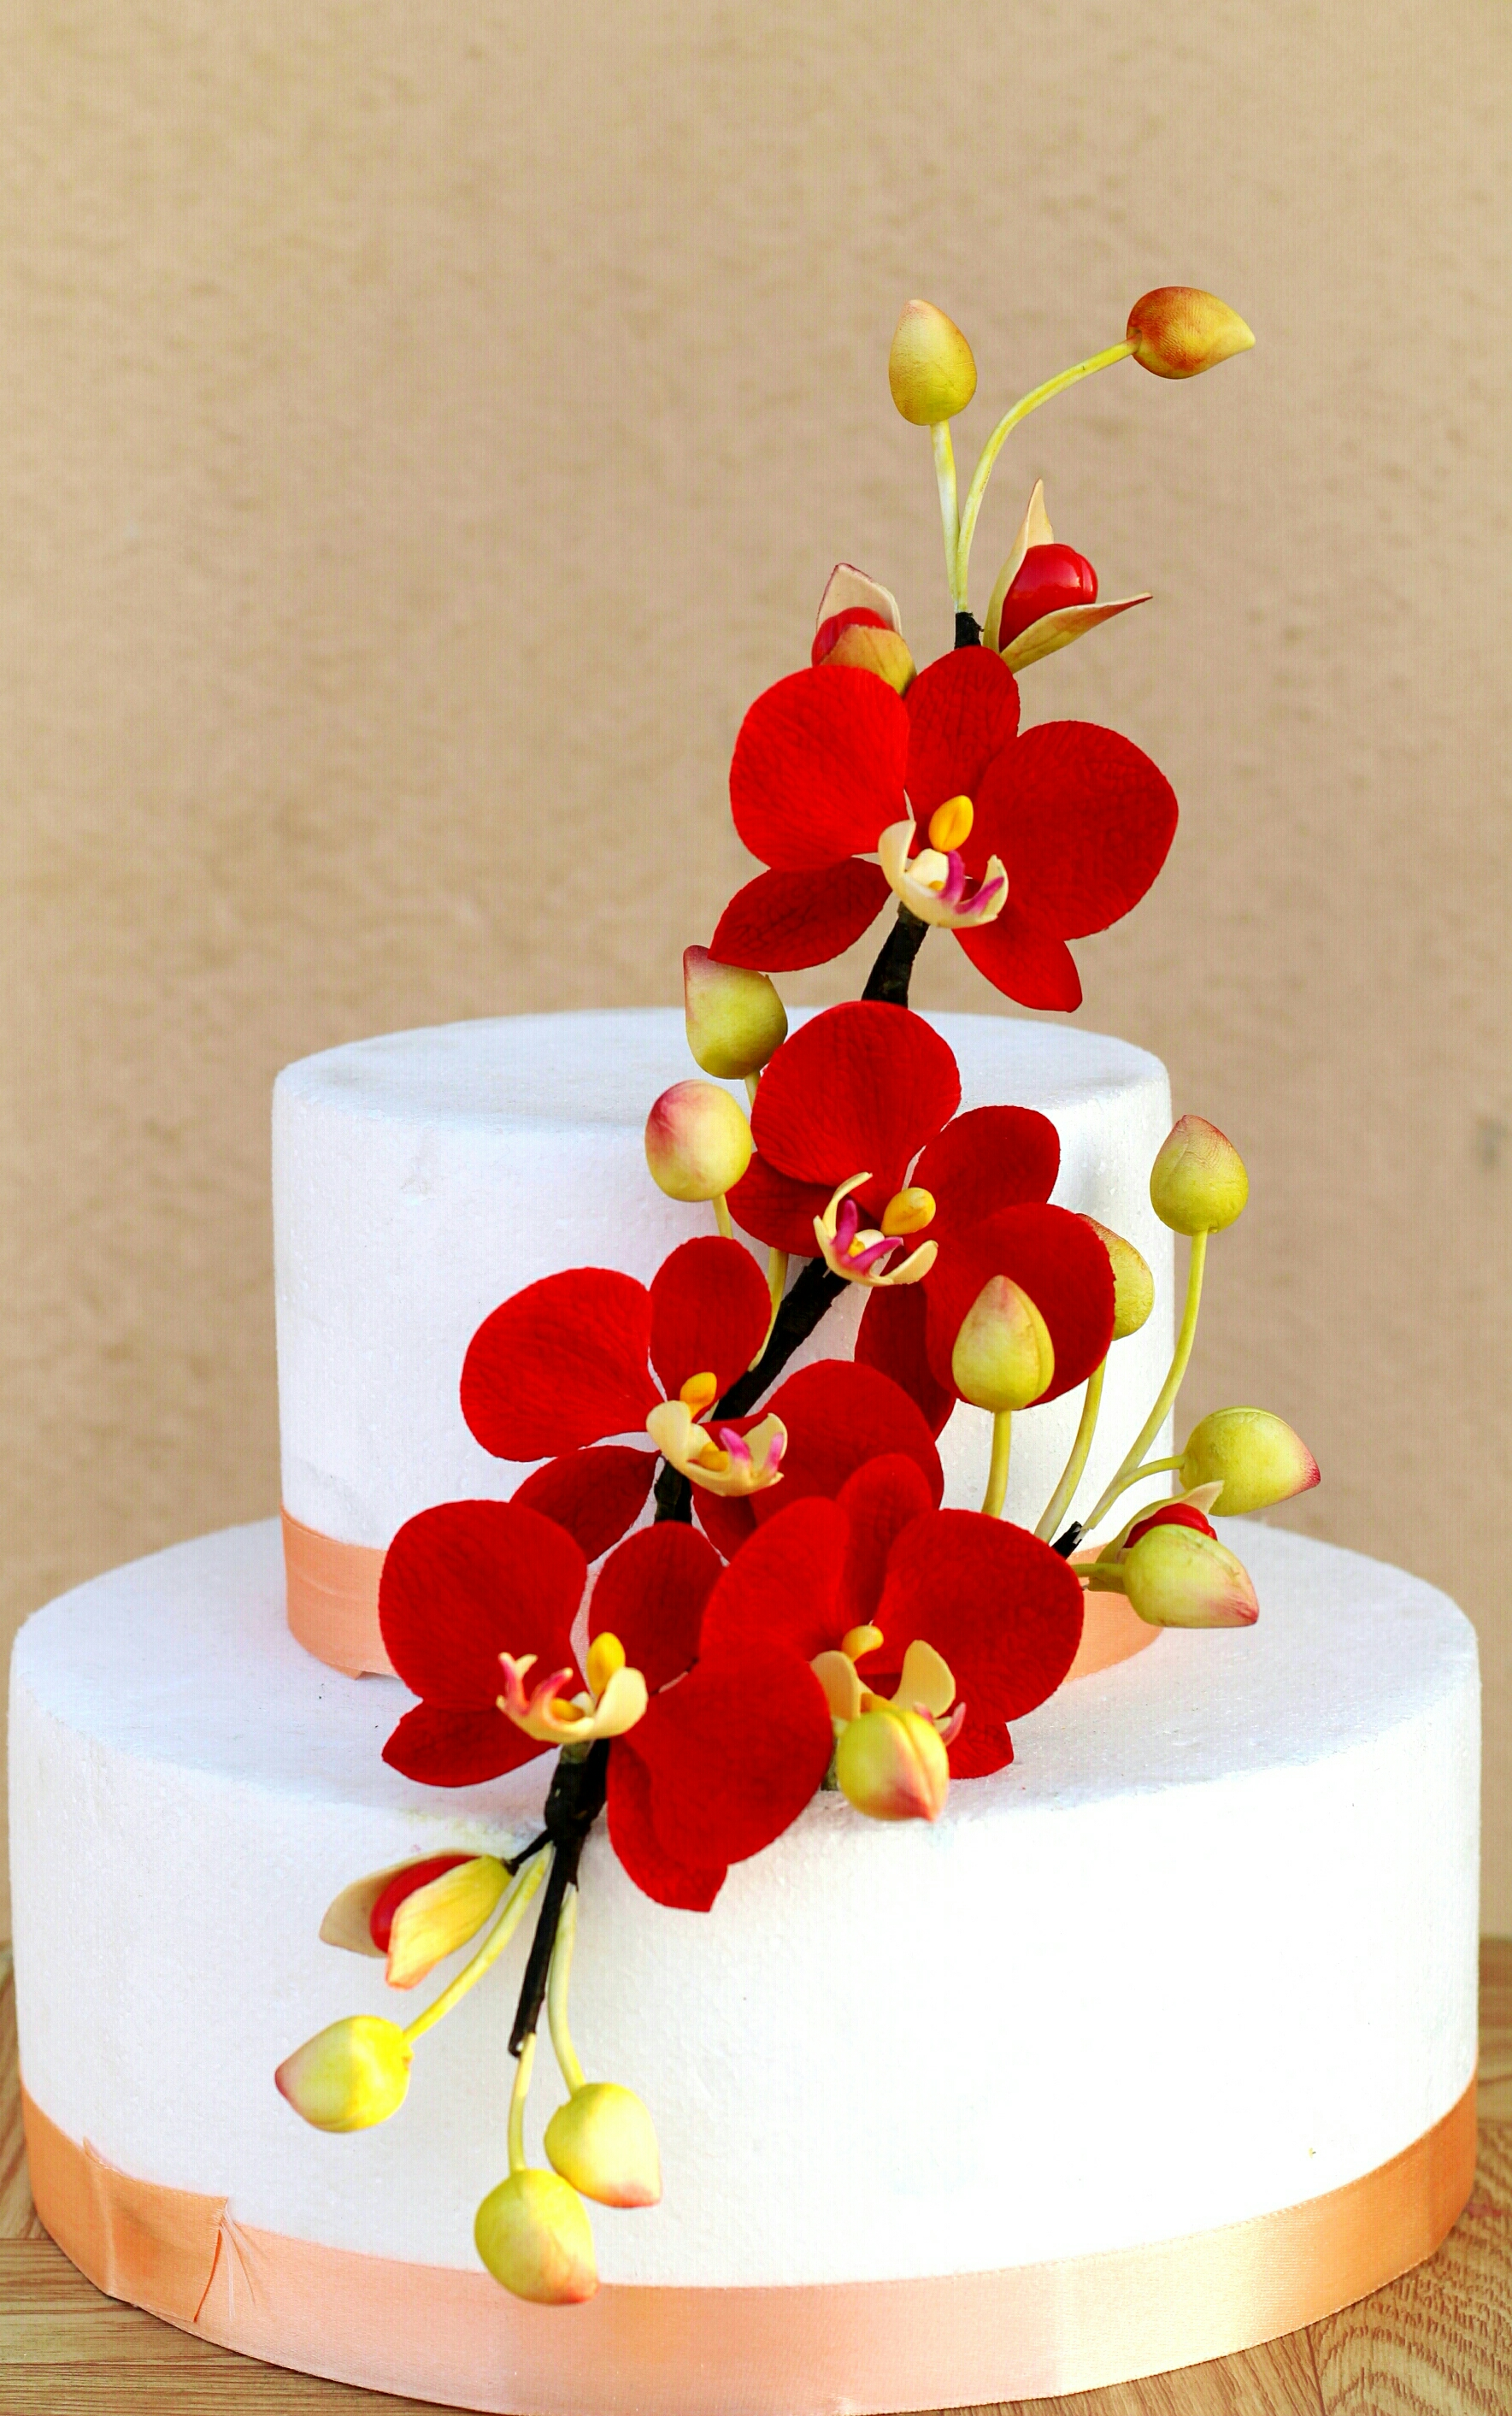 White wedding cake with red sugar lilies